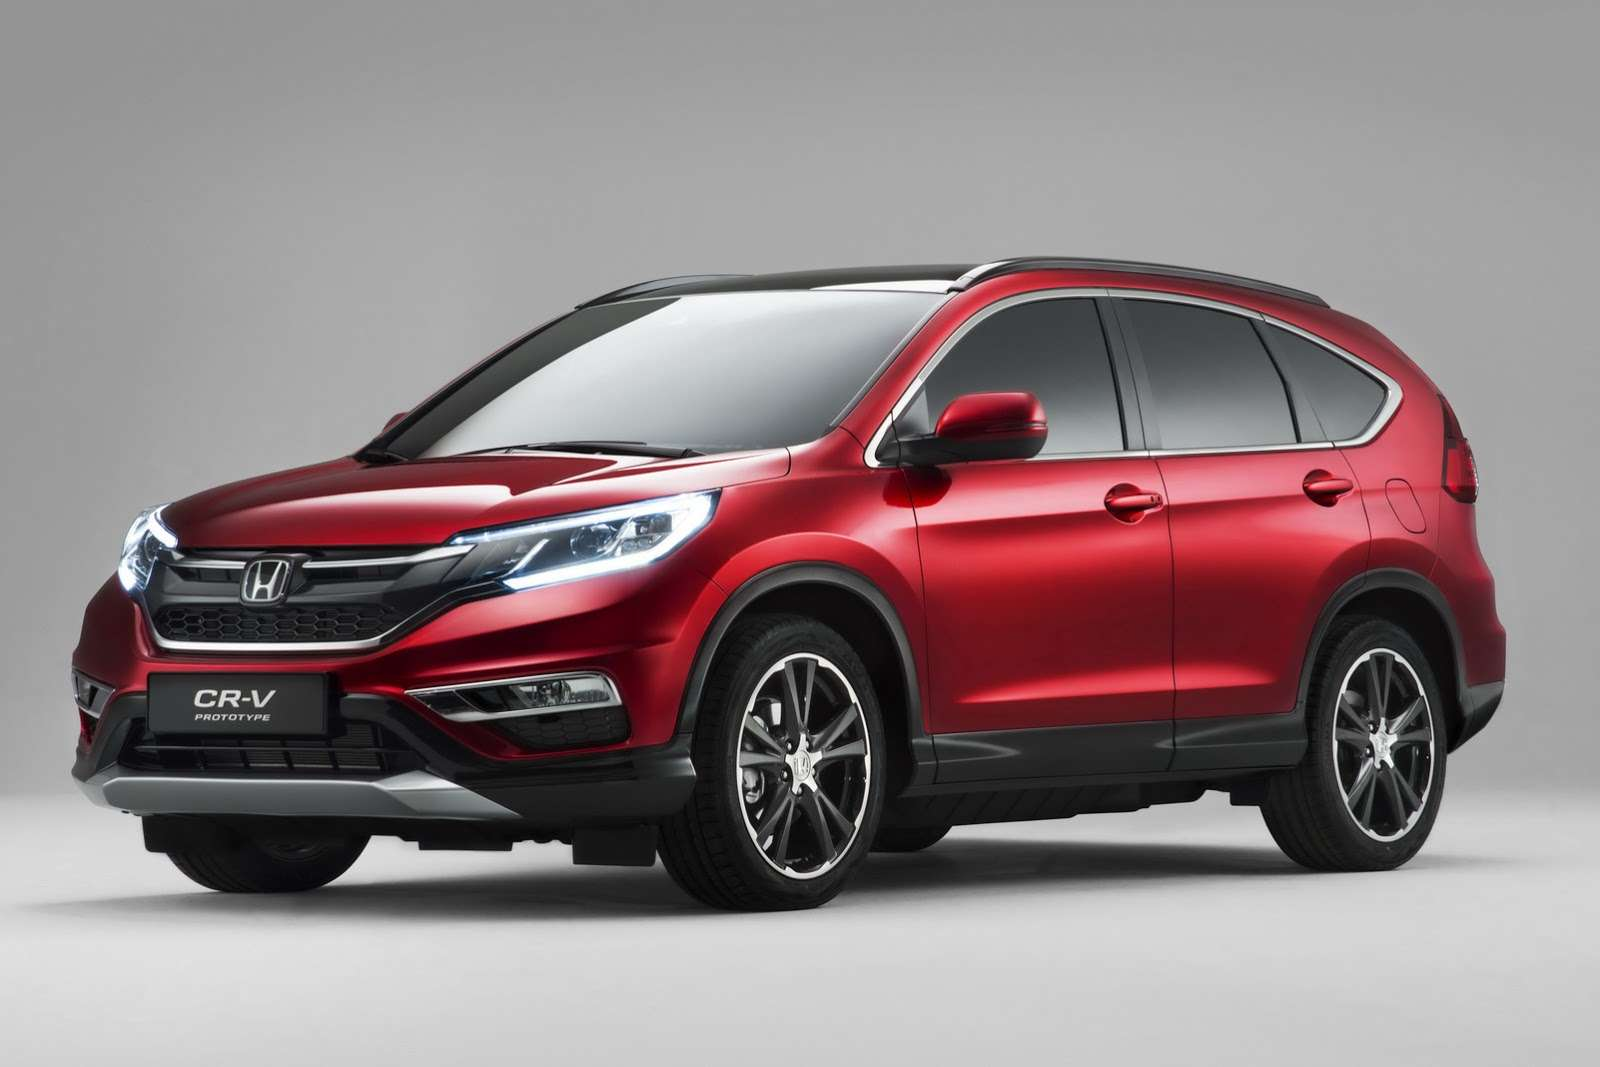 Honda CR-V 2015 Facelift